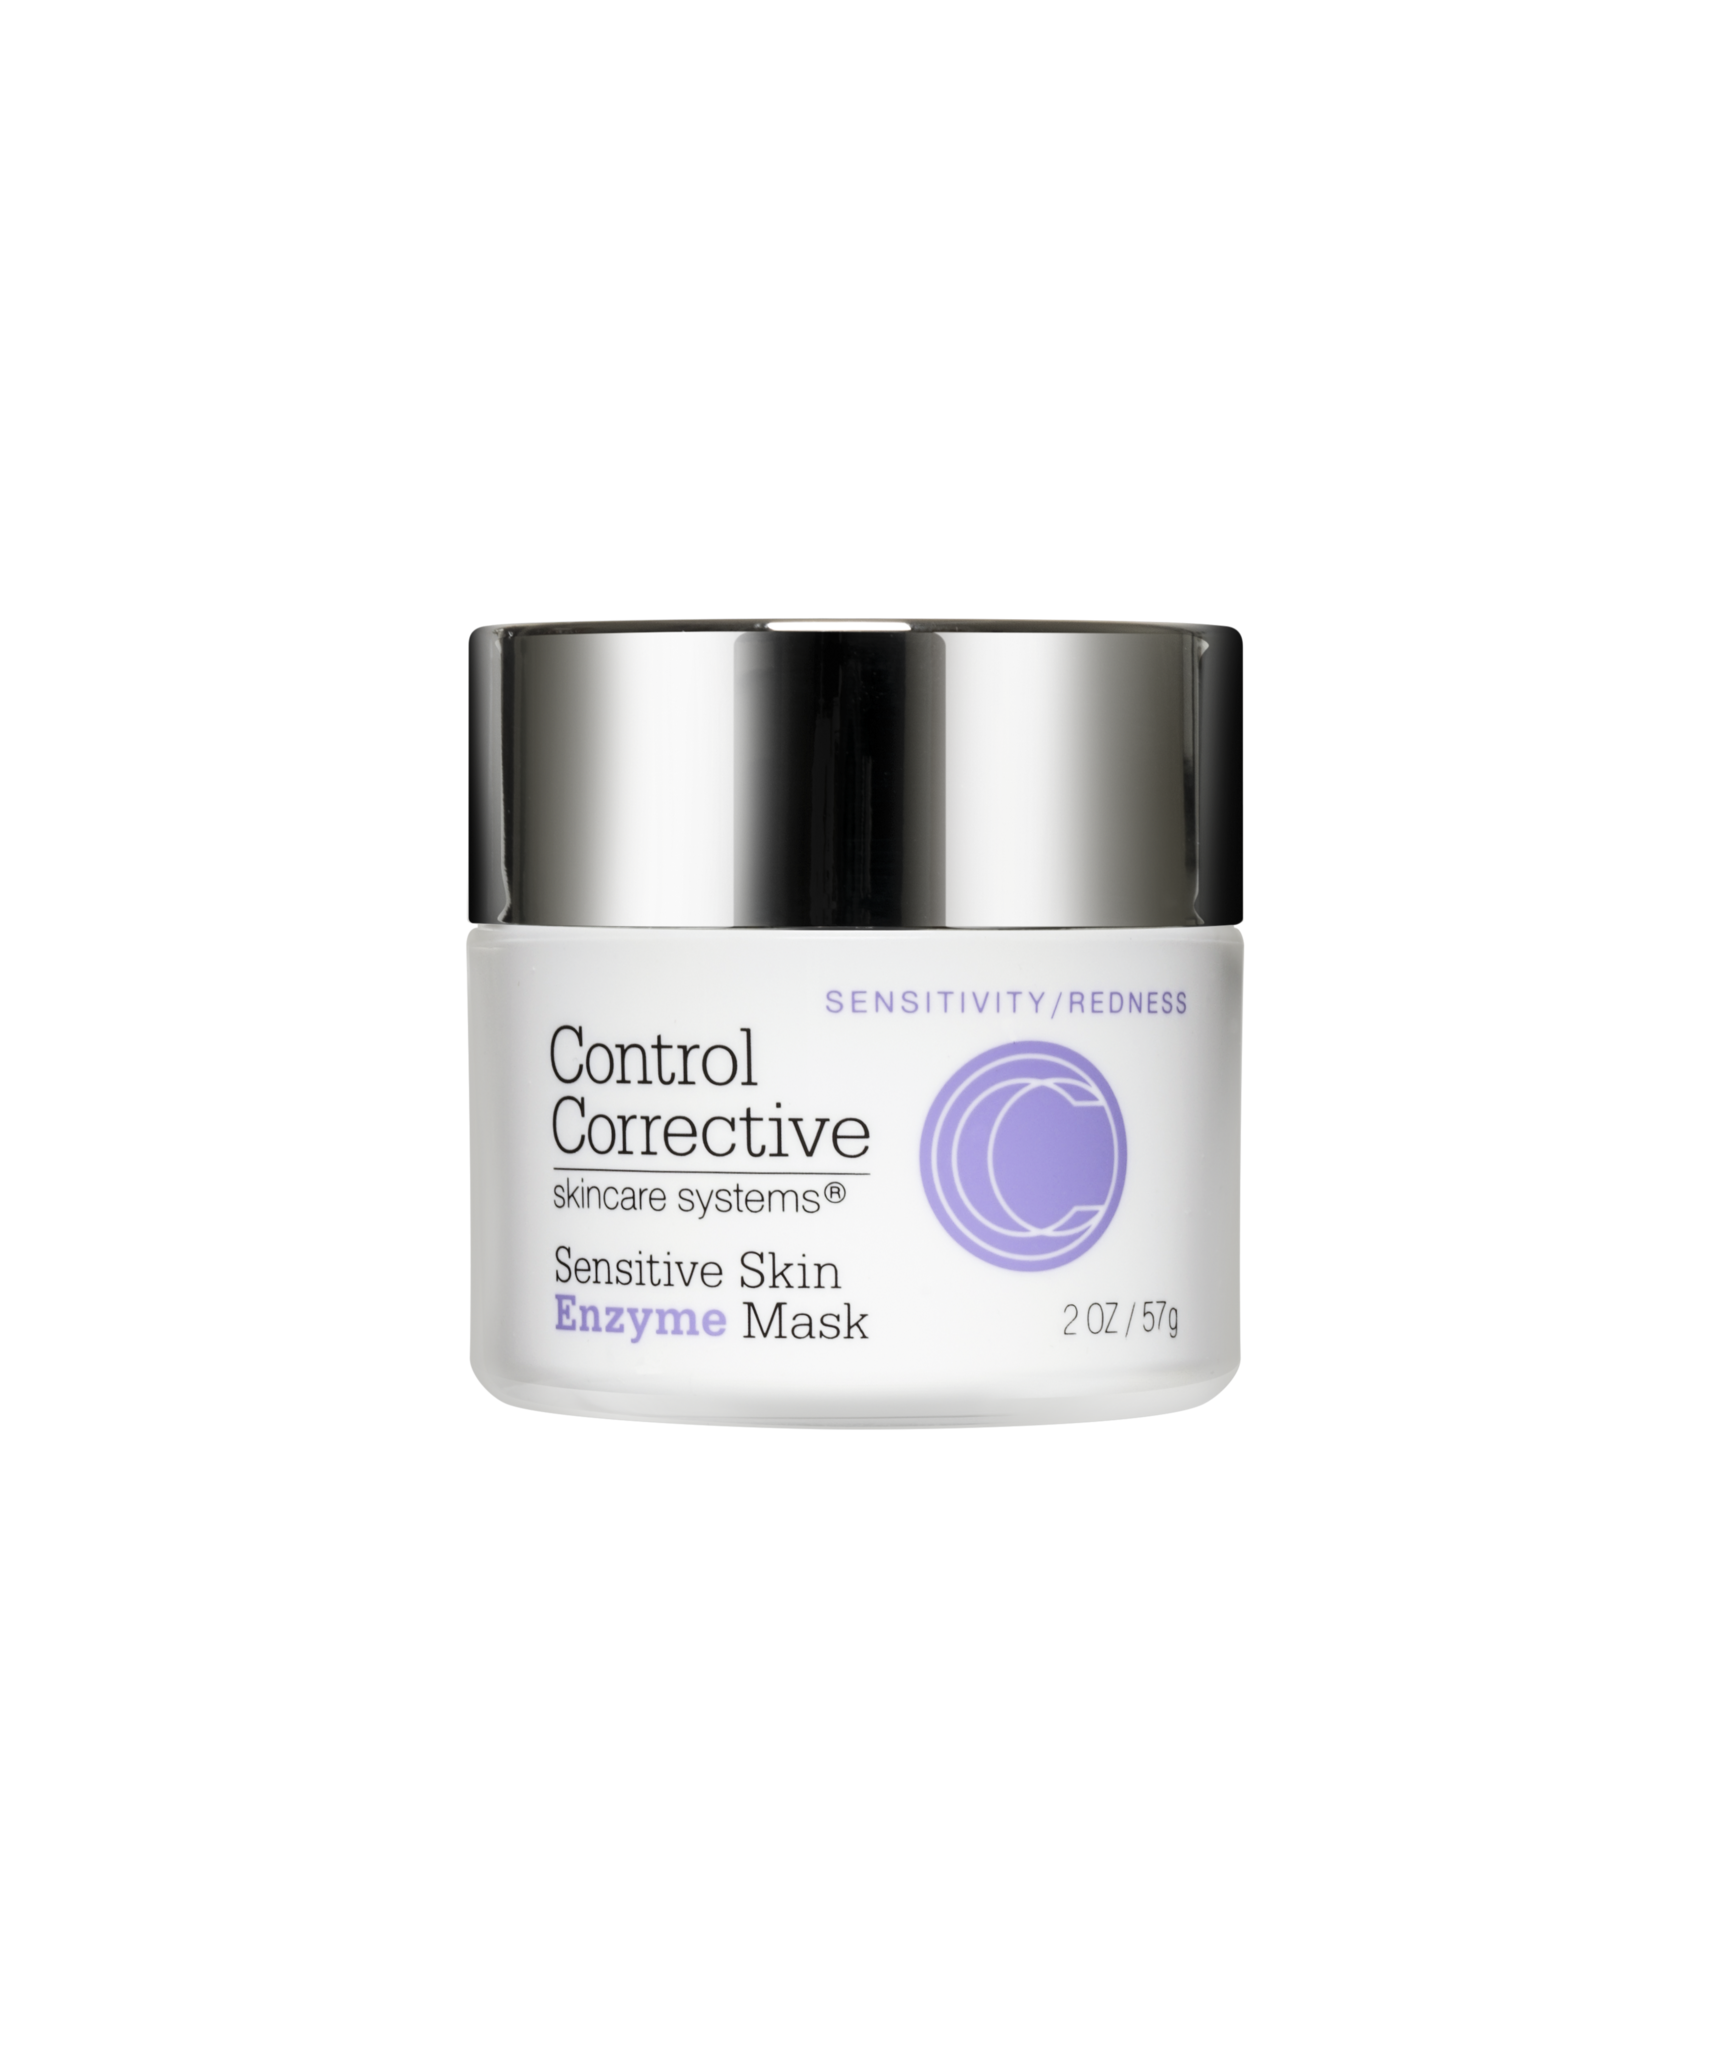 Control Corrective Sensitive Skin Enzyme Mask